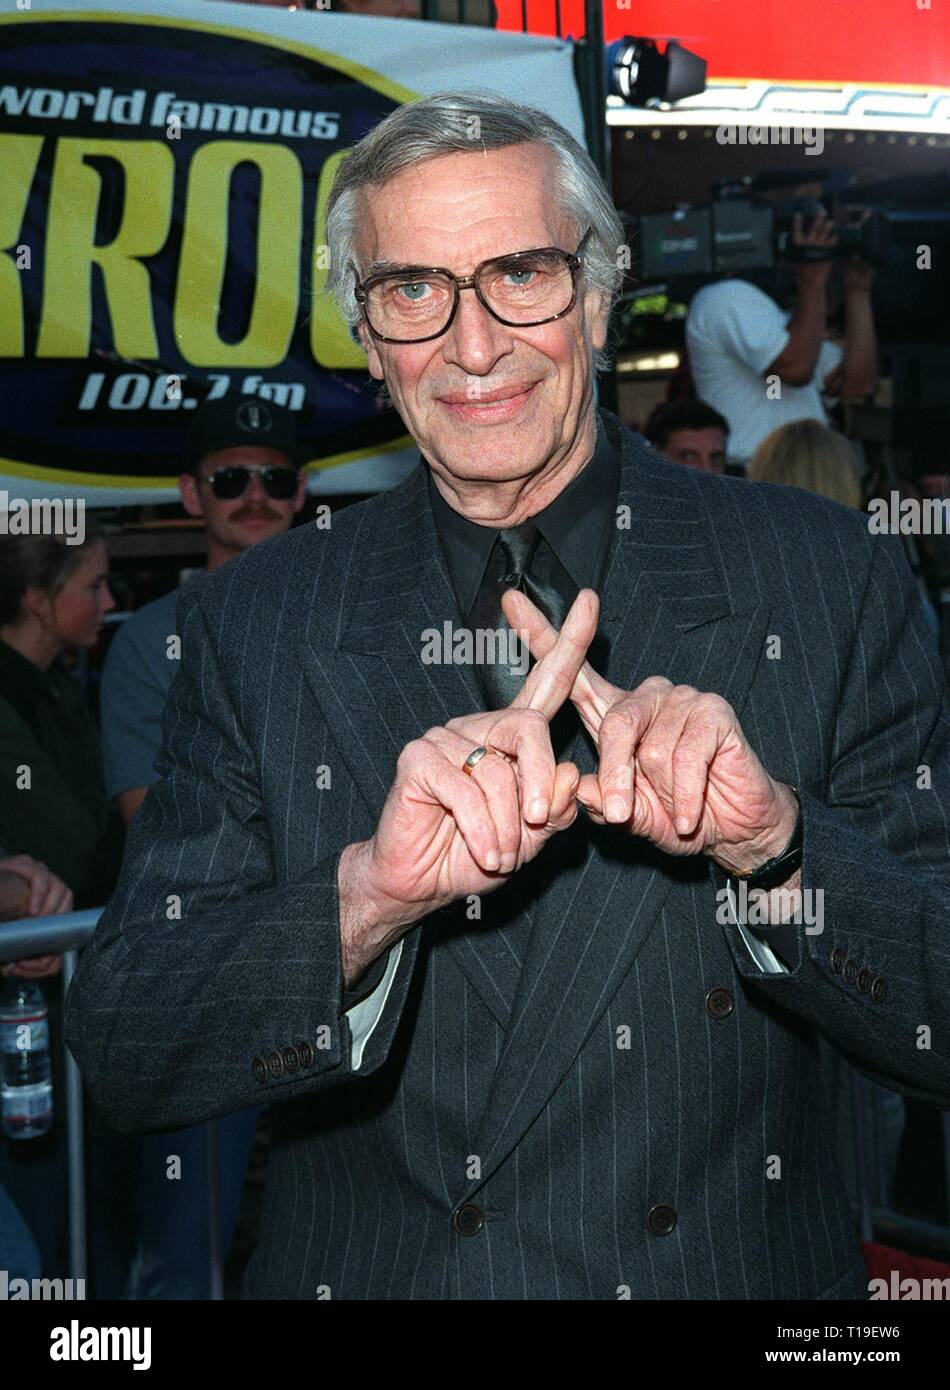 LOS ANGELES, CA - September 8, 2011:  Actor MARTIN LANDAU at the world premiere, in Los Angeles,  of his new movie 'The X-Files.' - Stock Image